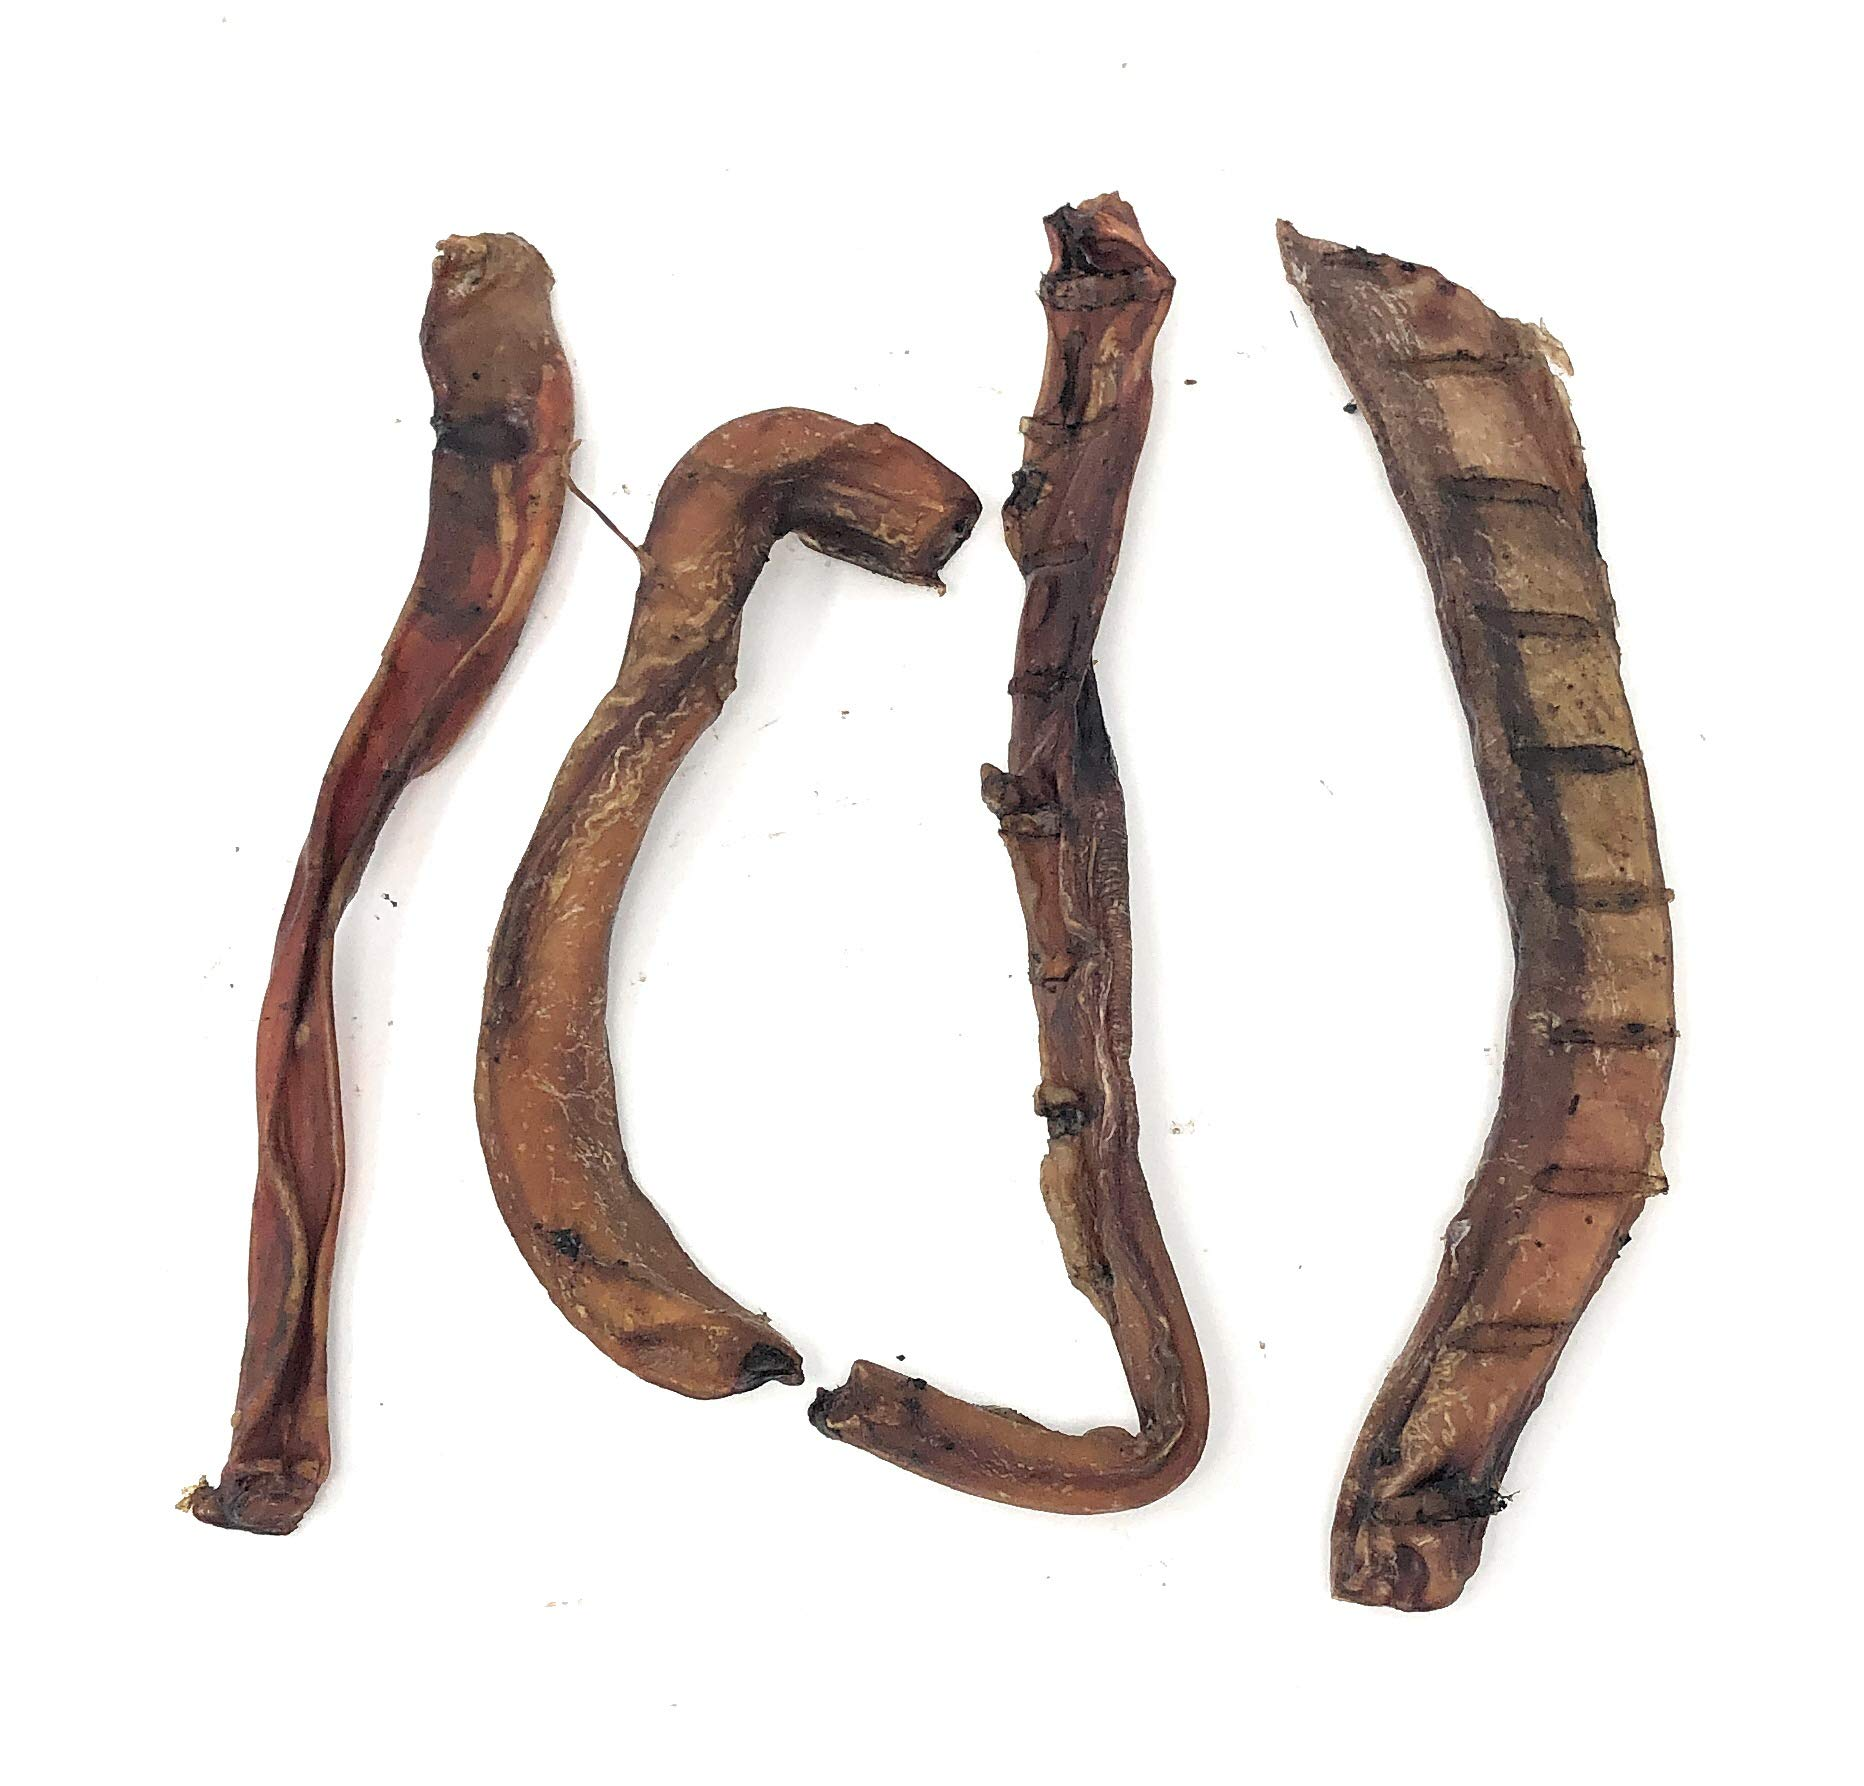 100% All Natural Beef Bully Sticks- Premium Grass Fed Beef Dog Chews- Smoked, Healthy Bully Sticks – Sourced and Made in The USA- No Additives or Artificial Preservatives- 12 Pack of 6-8 Inch Sticks by Jack's Premium (Image #5)